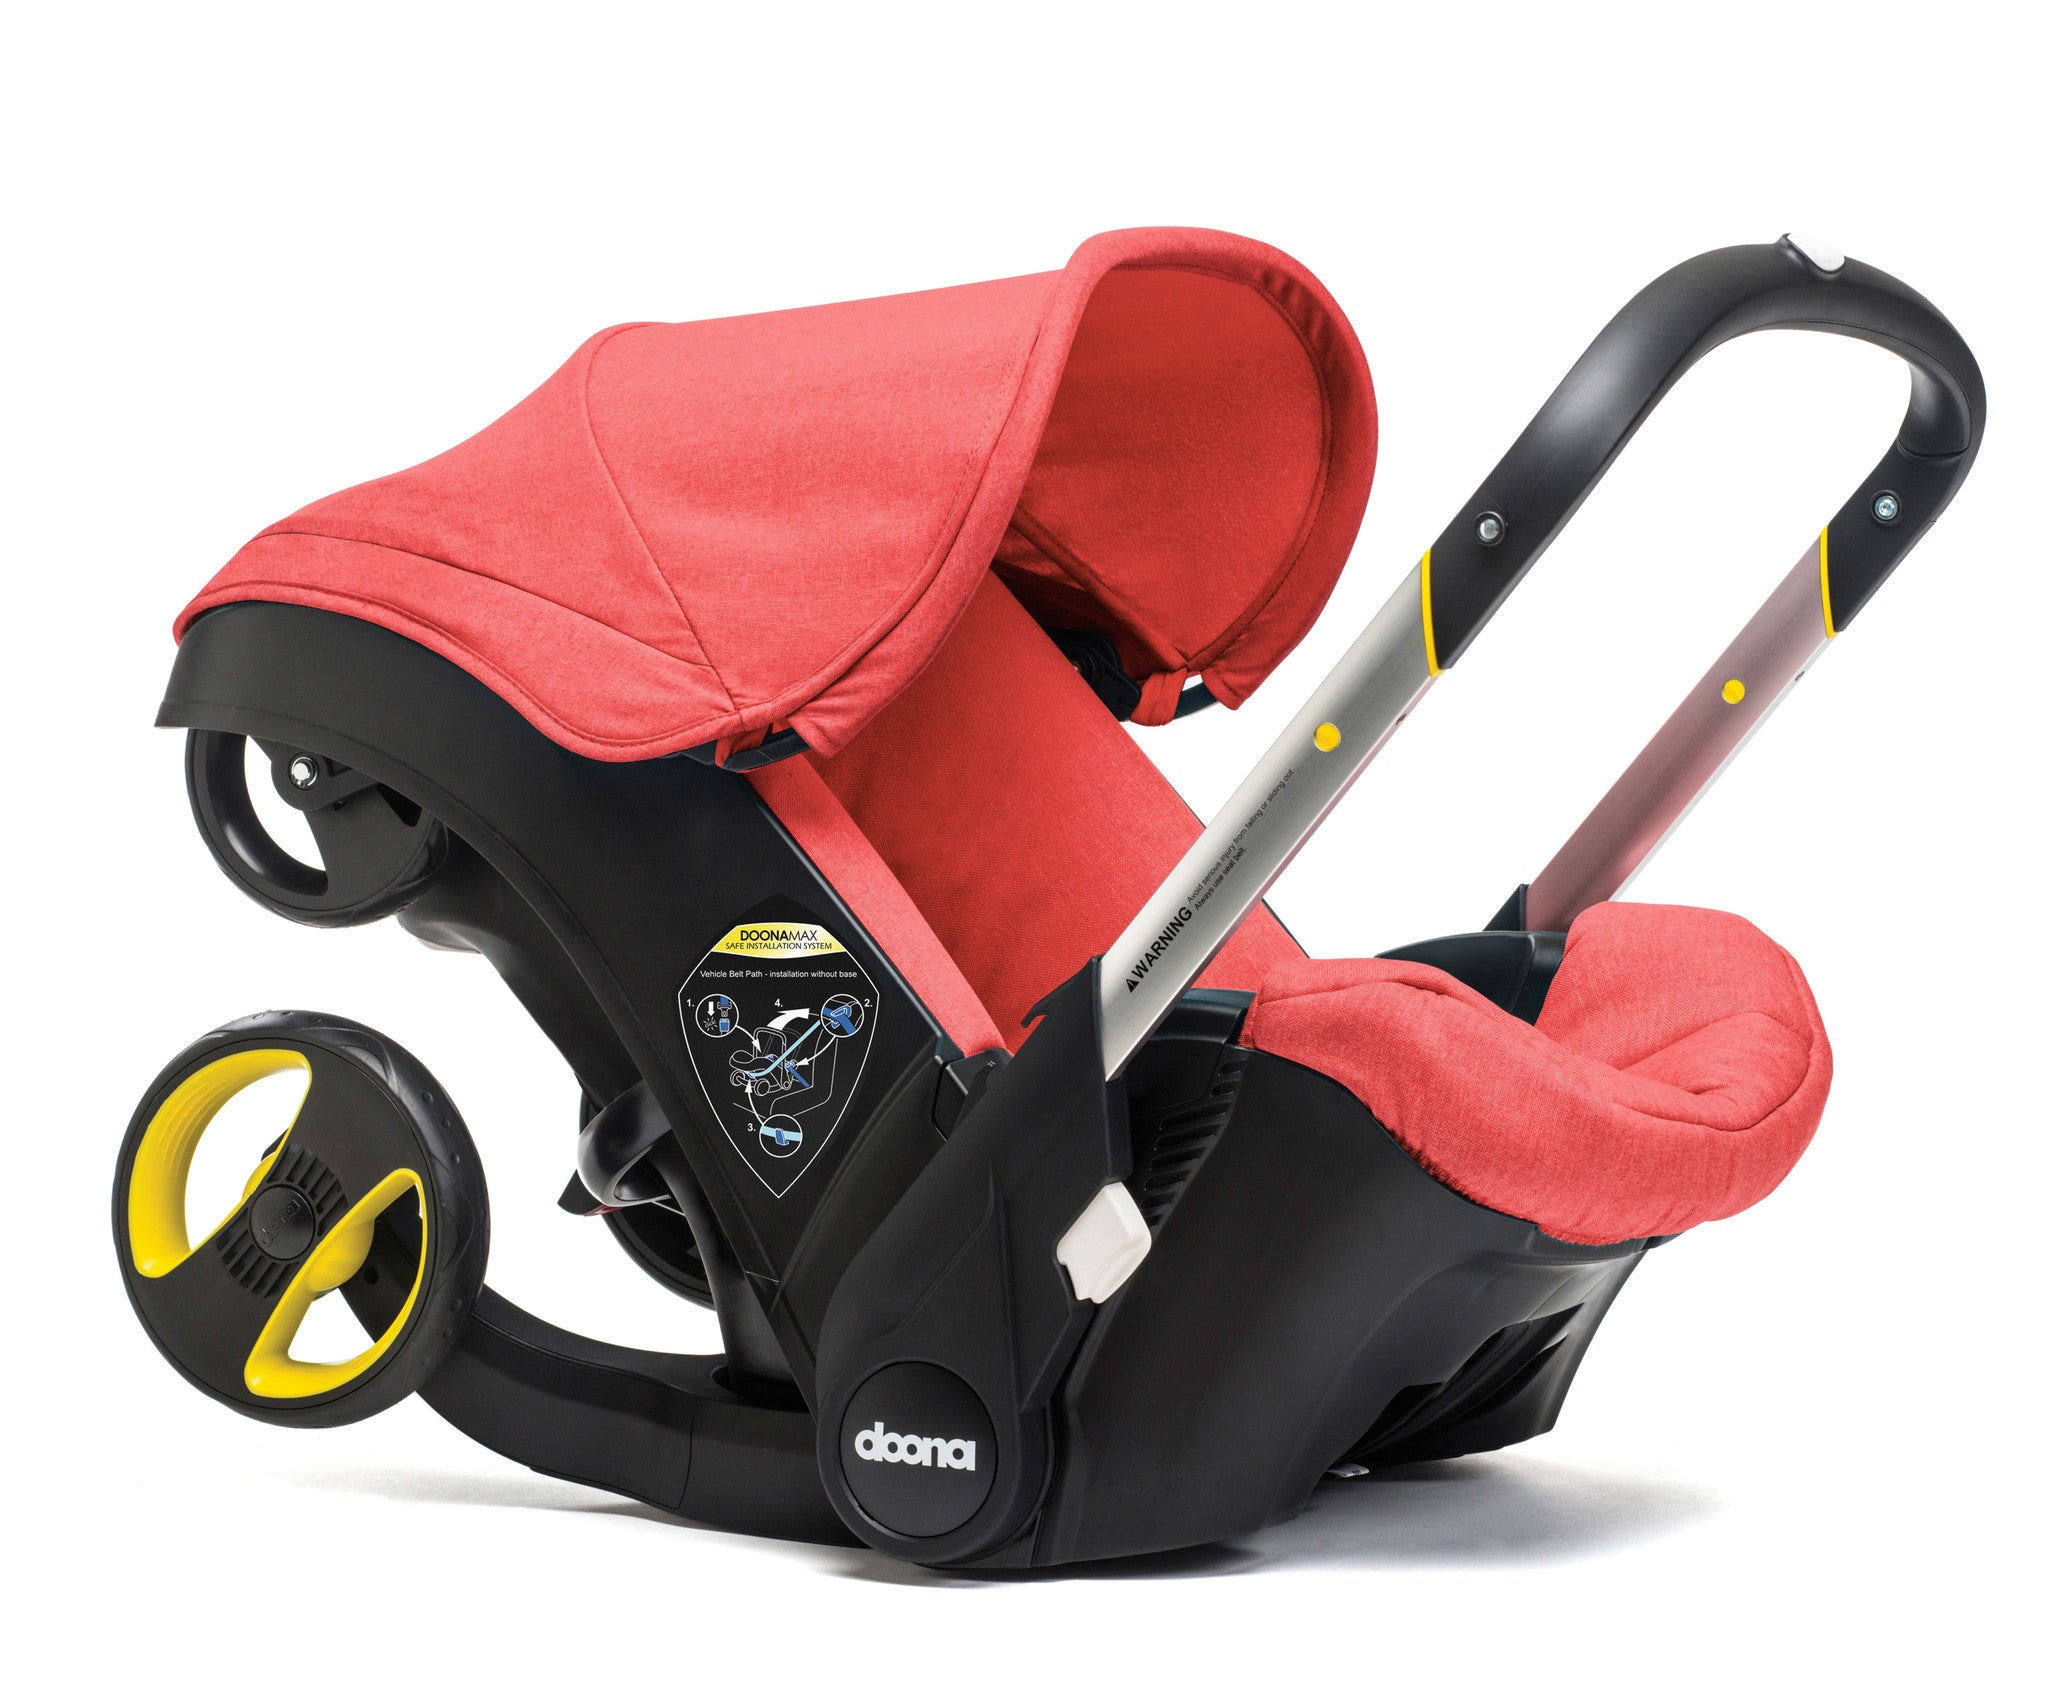 Doona Car Seat Stroller for Sale - Price & Review ...